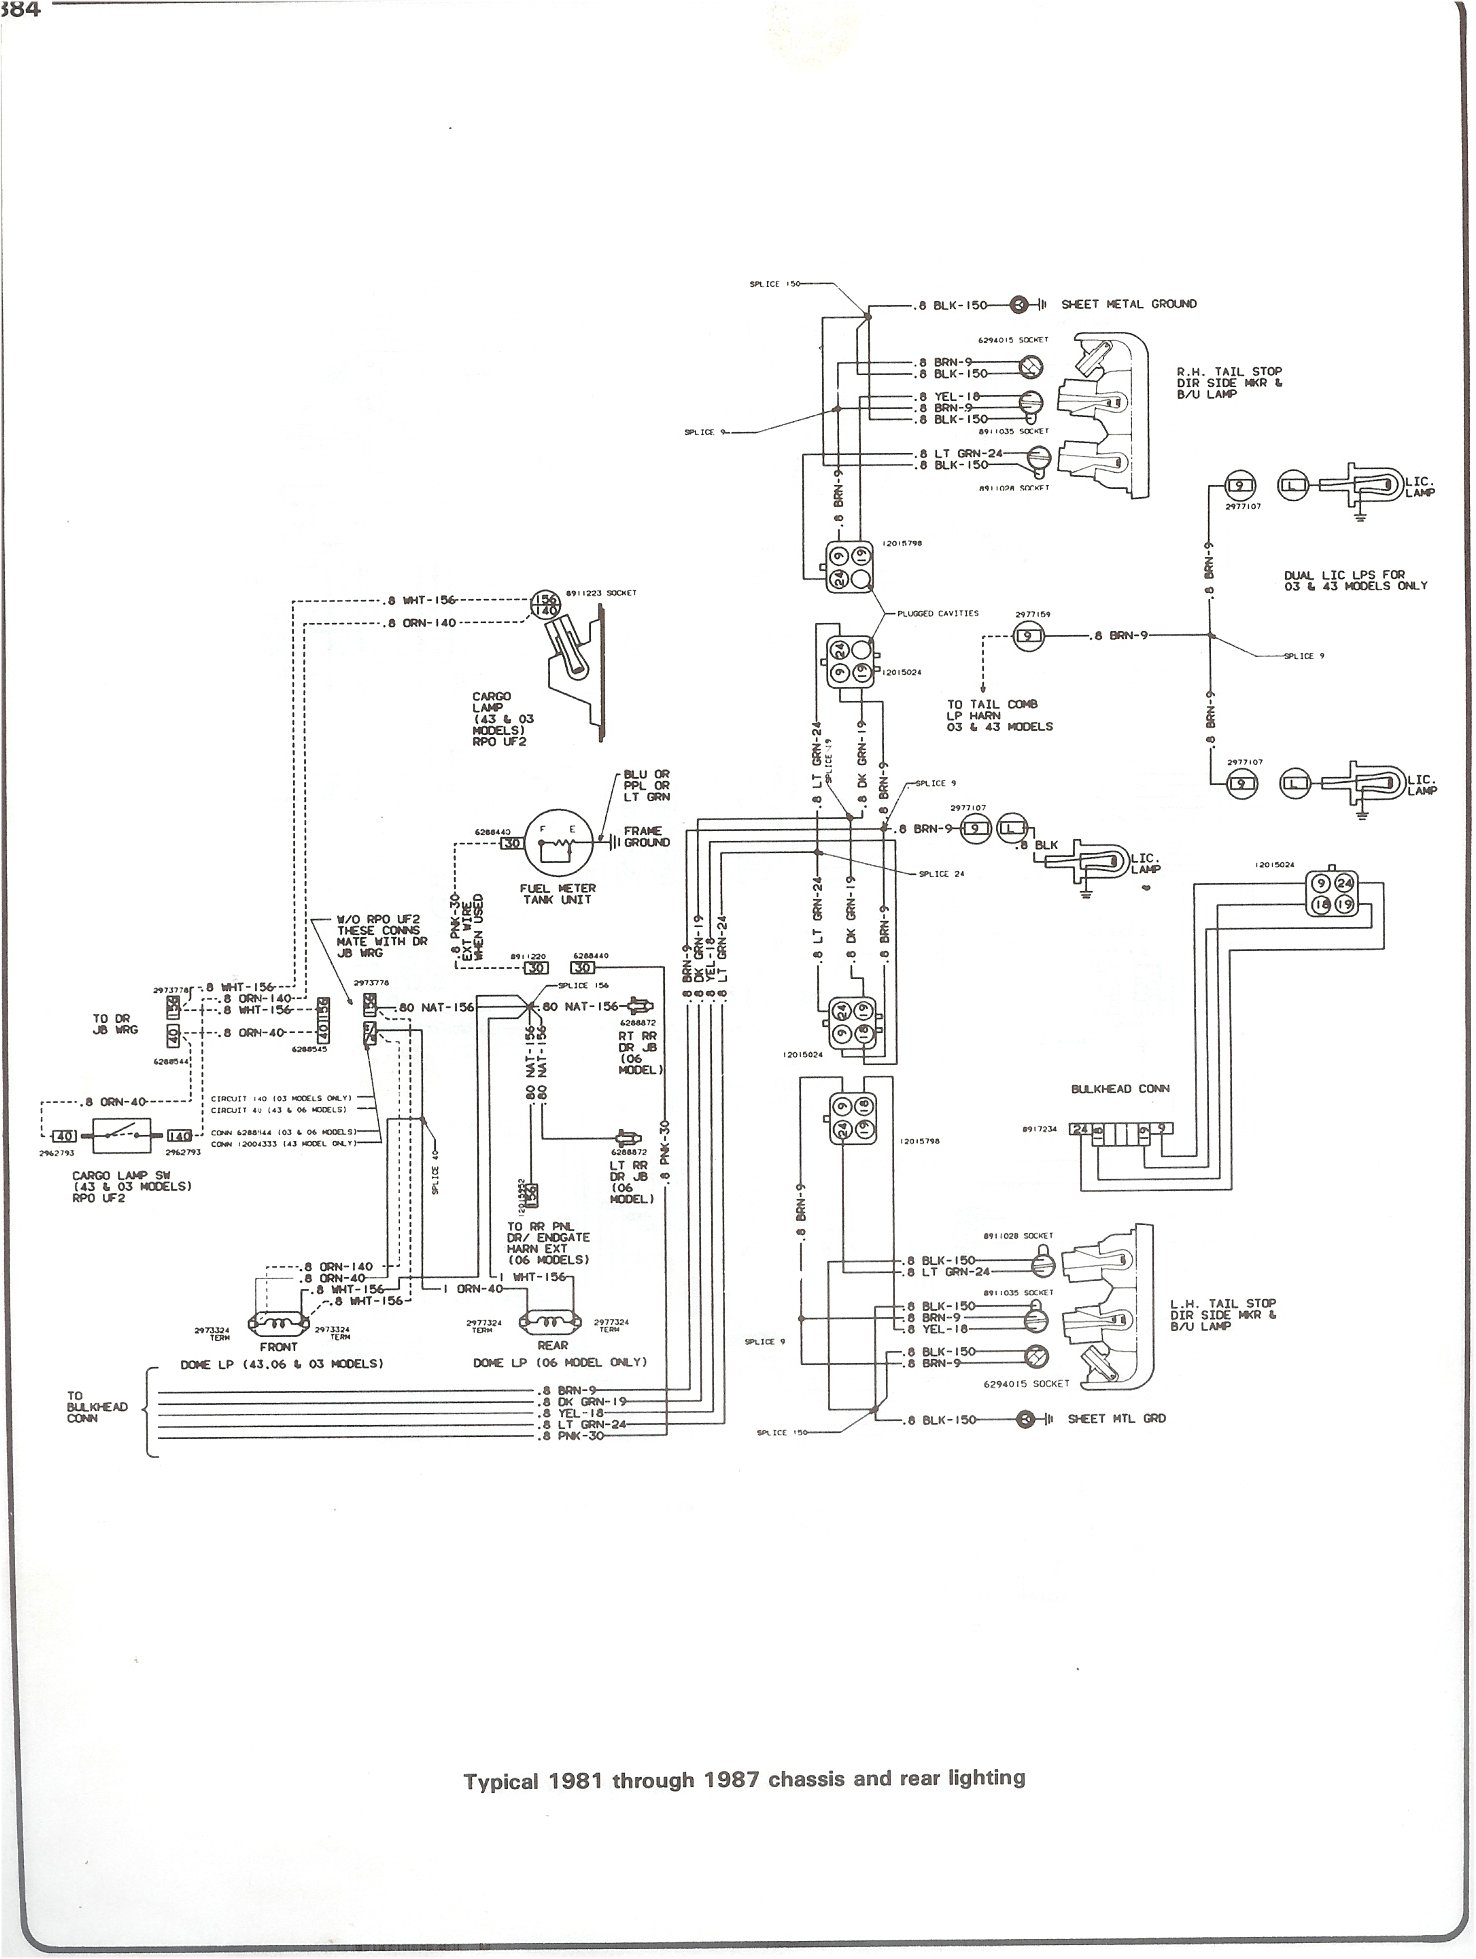 2004 Gmc 2500hd Trailer Wiring Diagram Circuit Schematic Pictures To